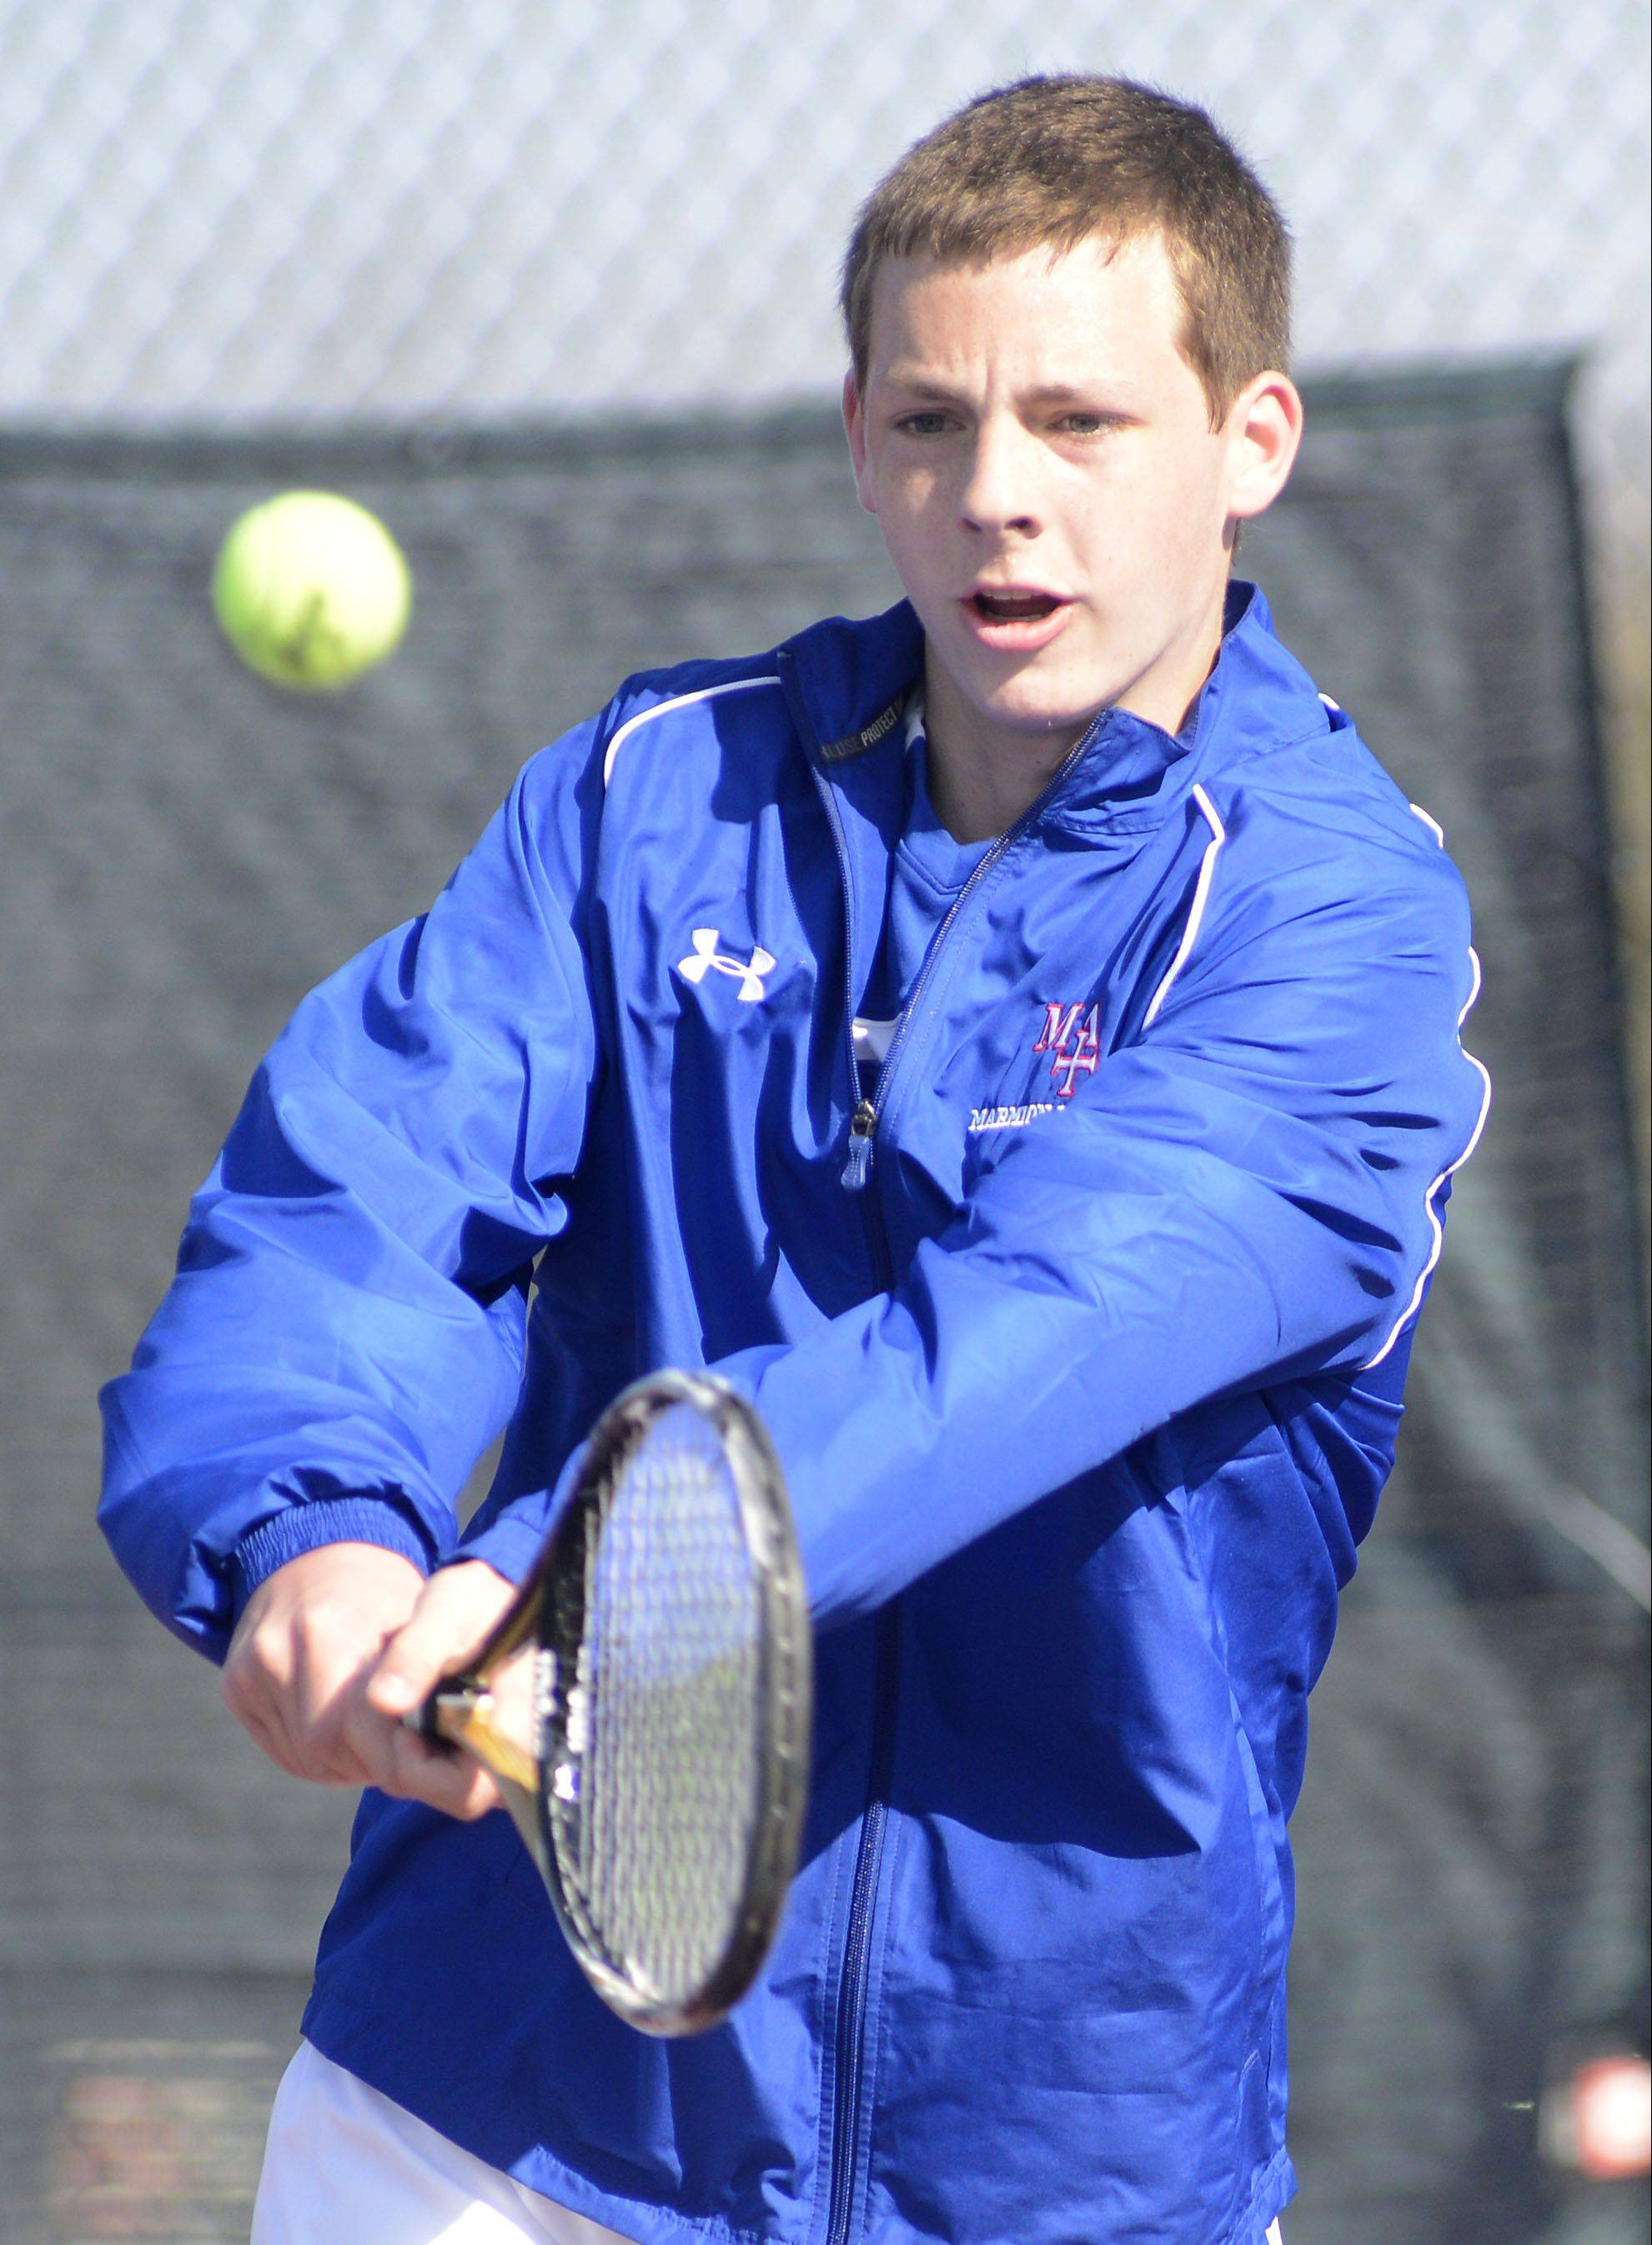 John King helped Marmion win the title Saturday at West Aurora's invitational.